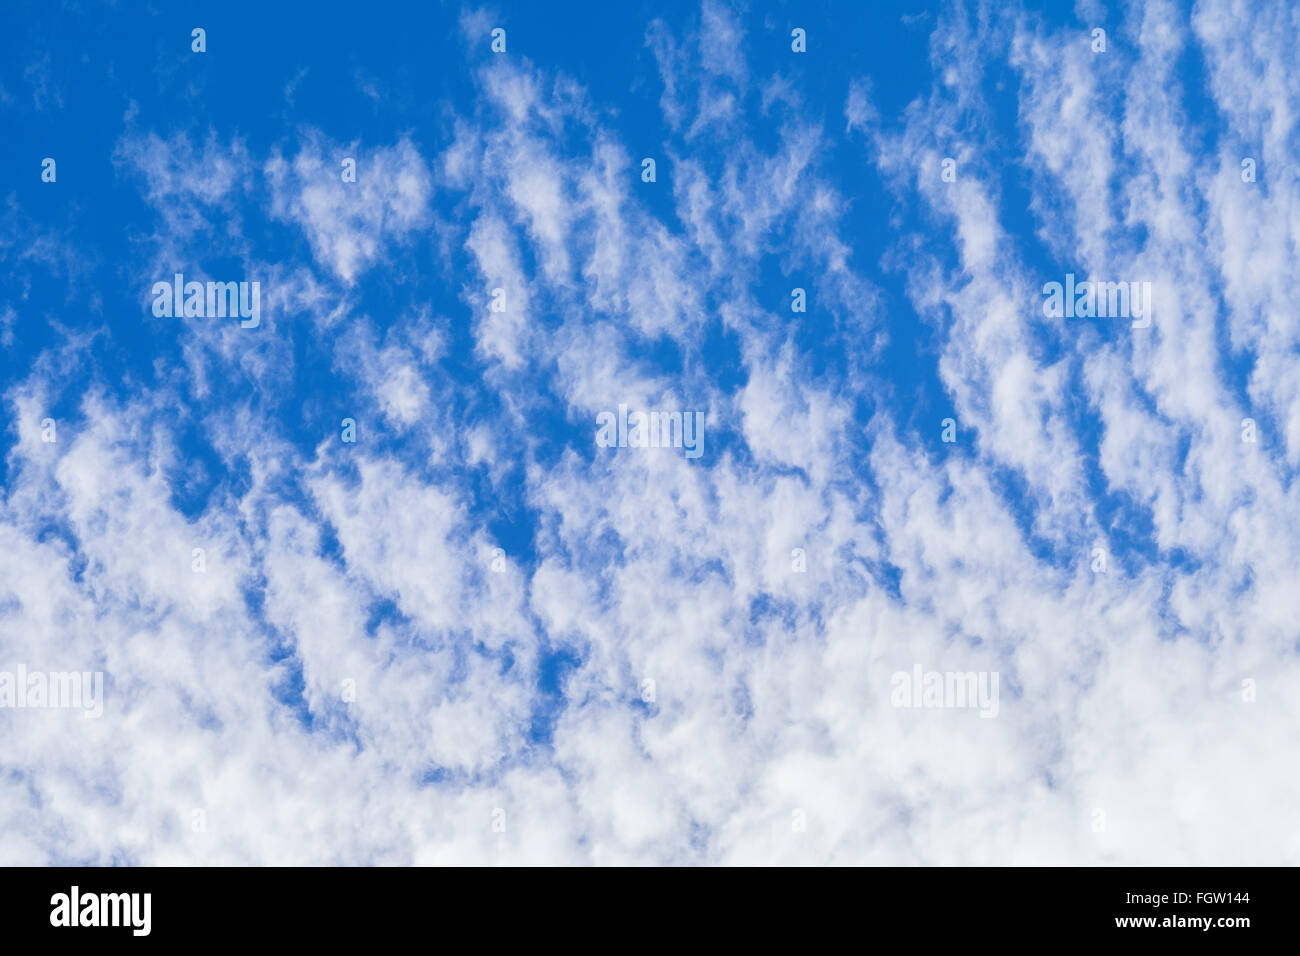 Altocumulus clouds against a blue sky in late winter on a warm day. - Stock Image